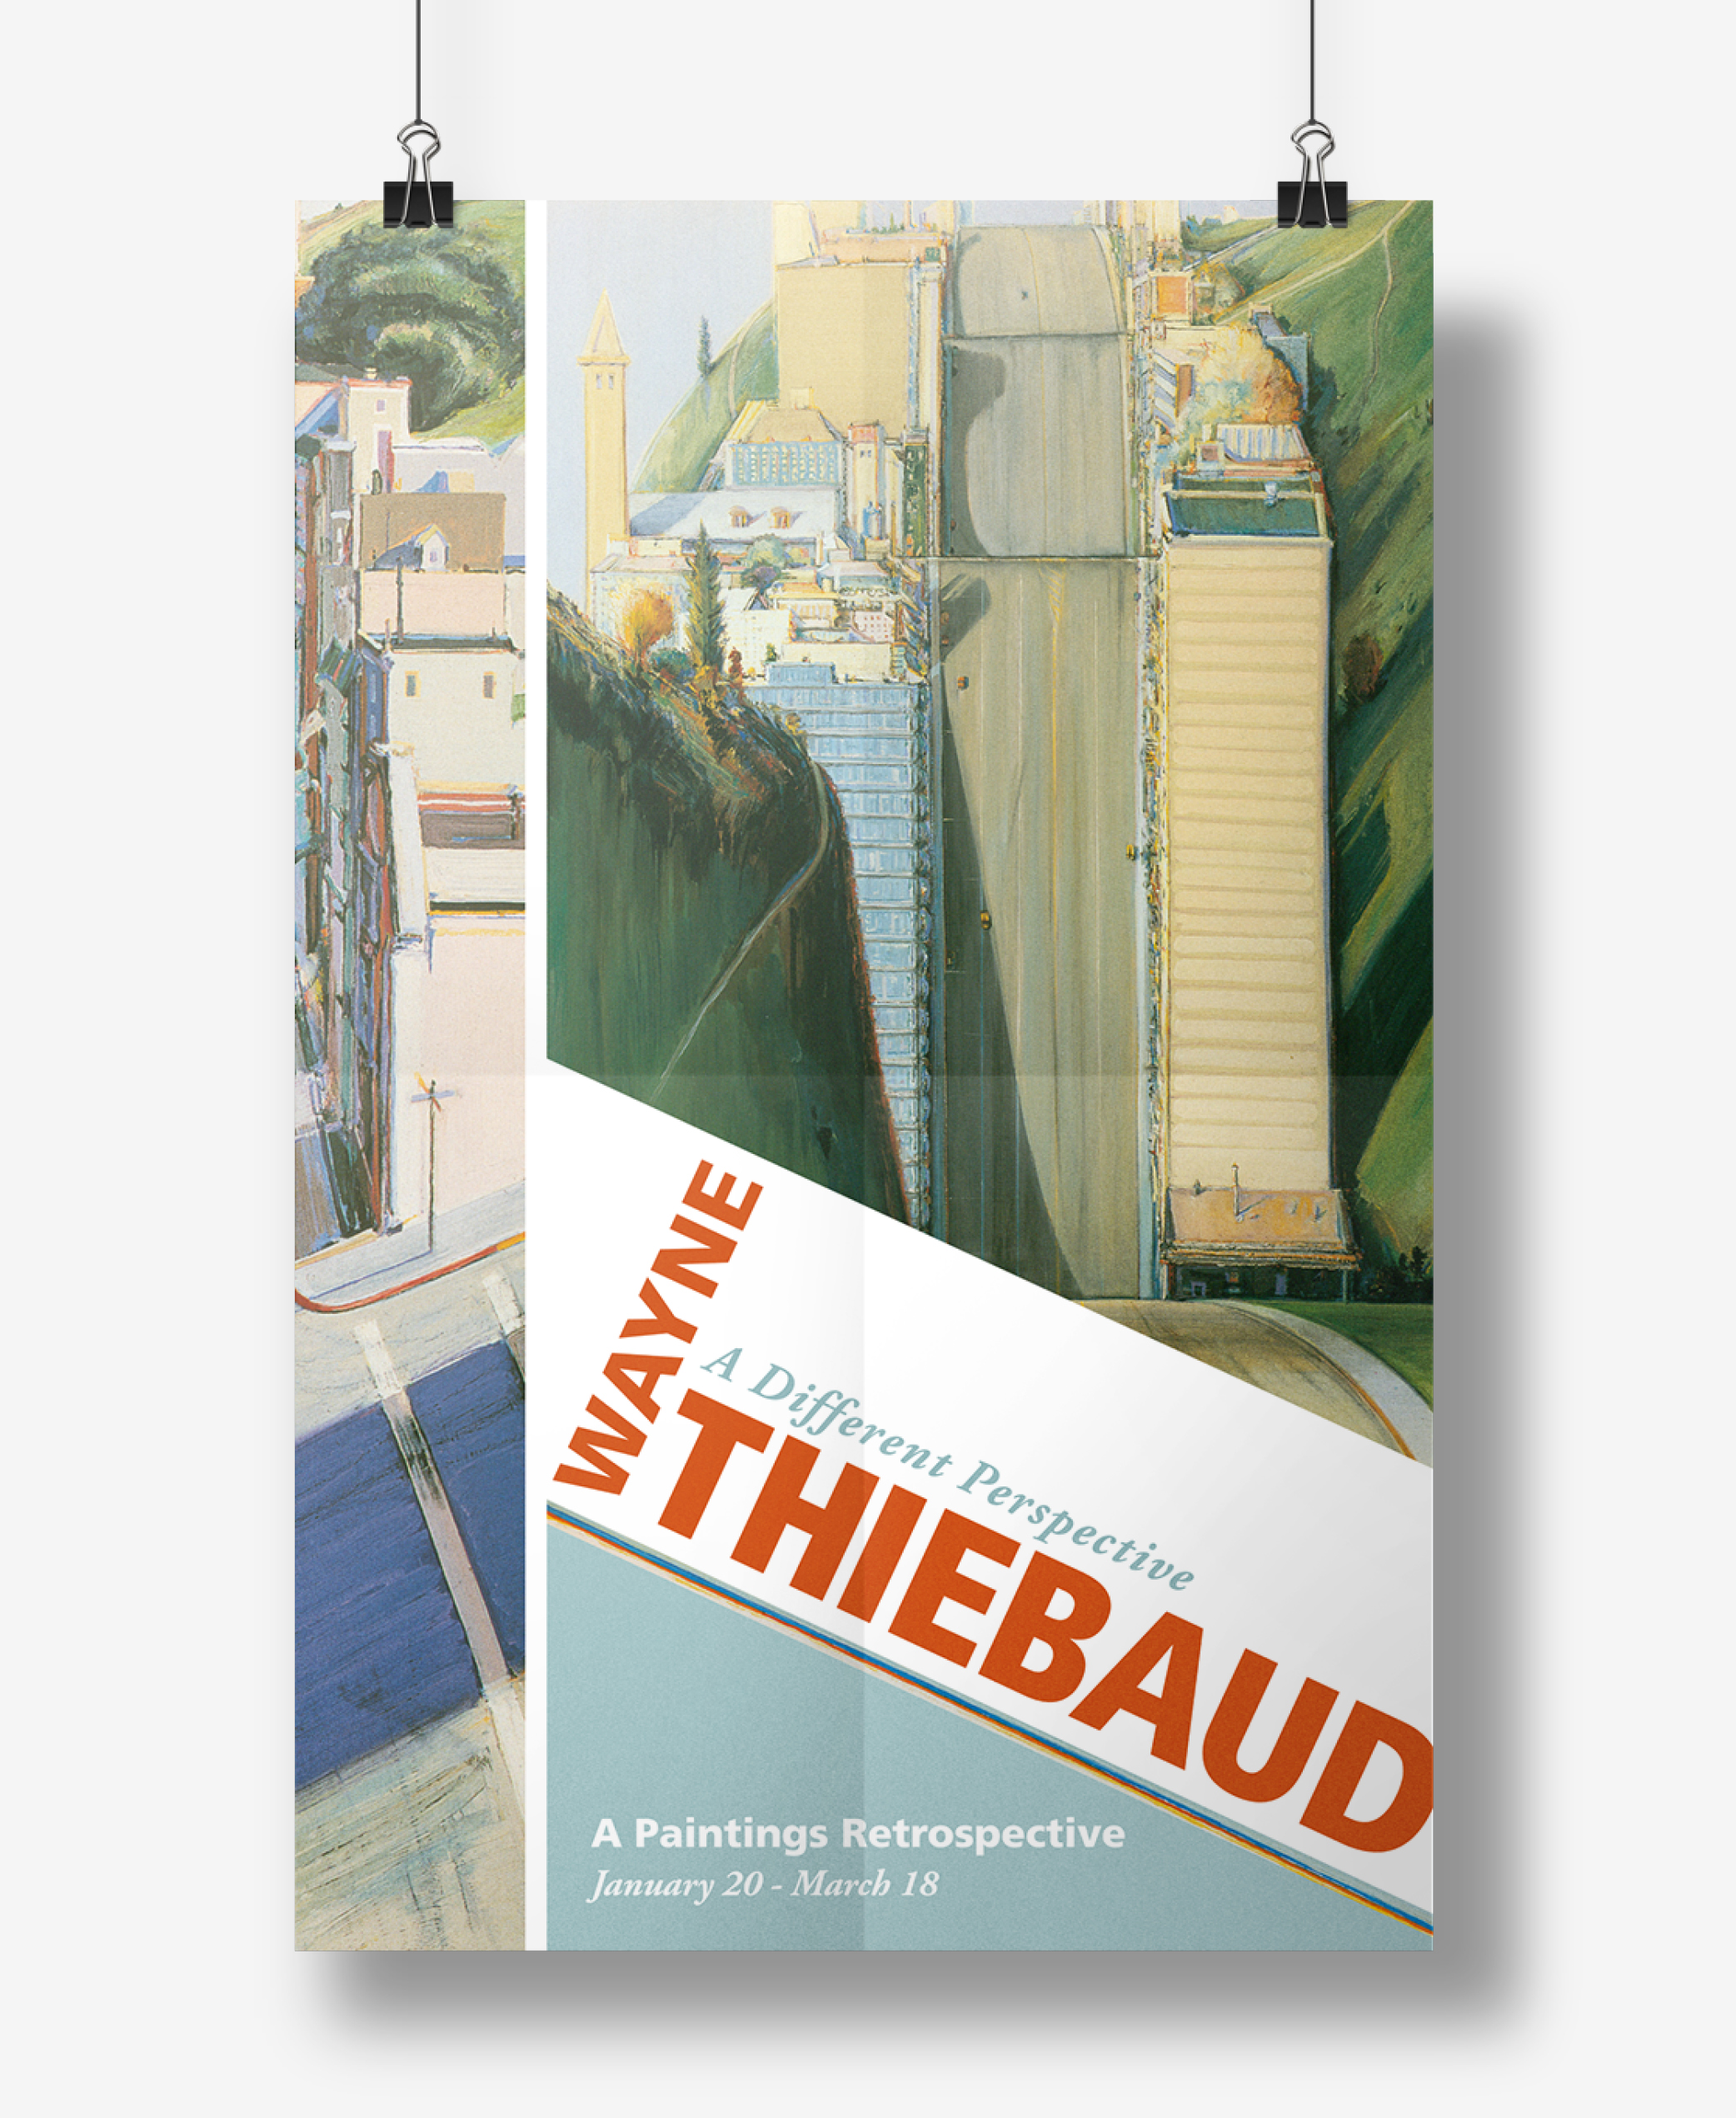 Thiebaud exhibit poster, Graphic Design, Jessica Oviedo